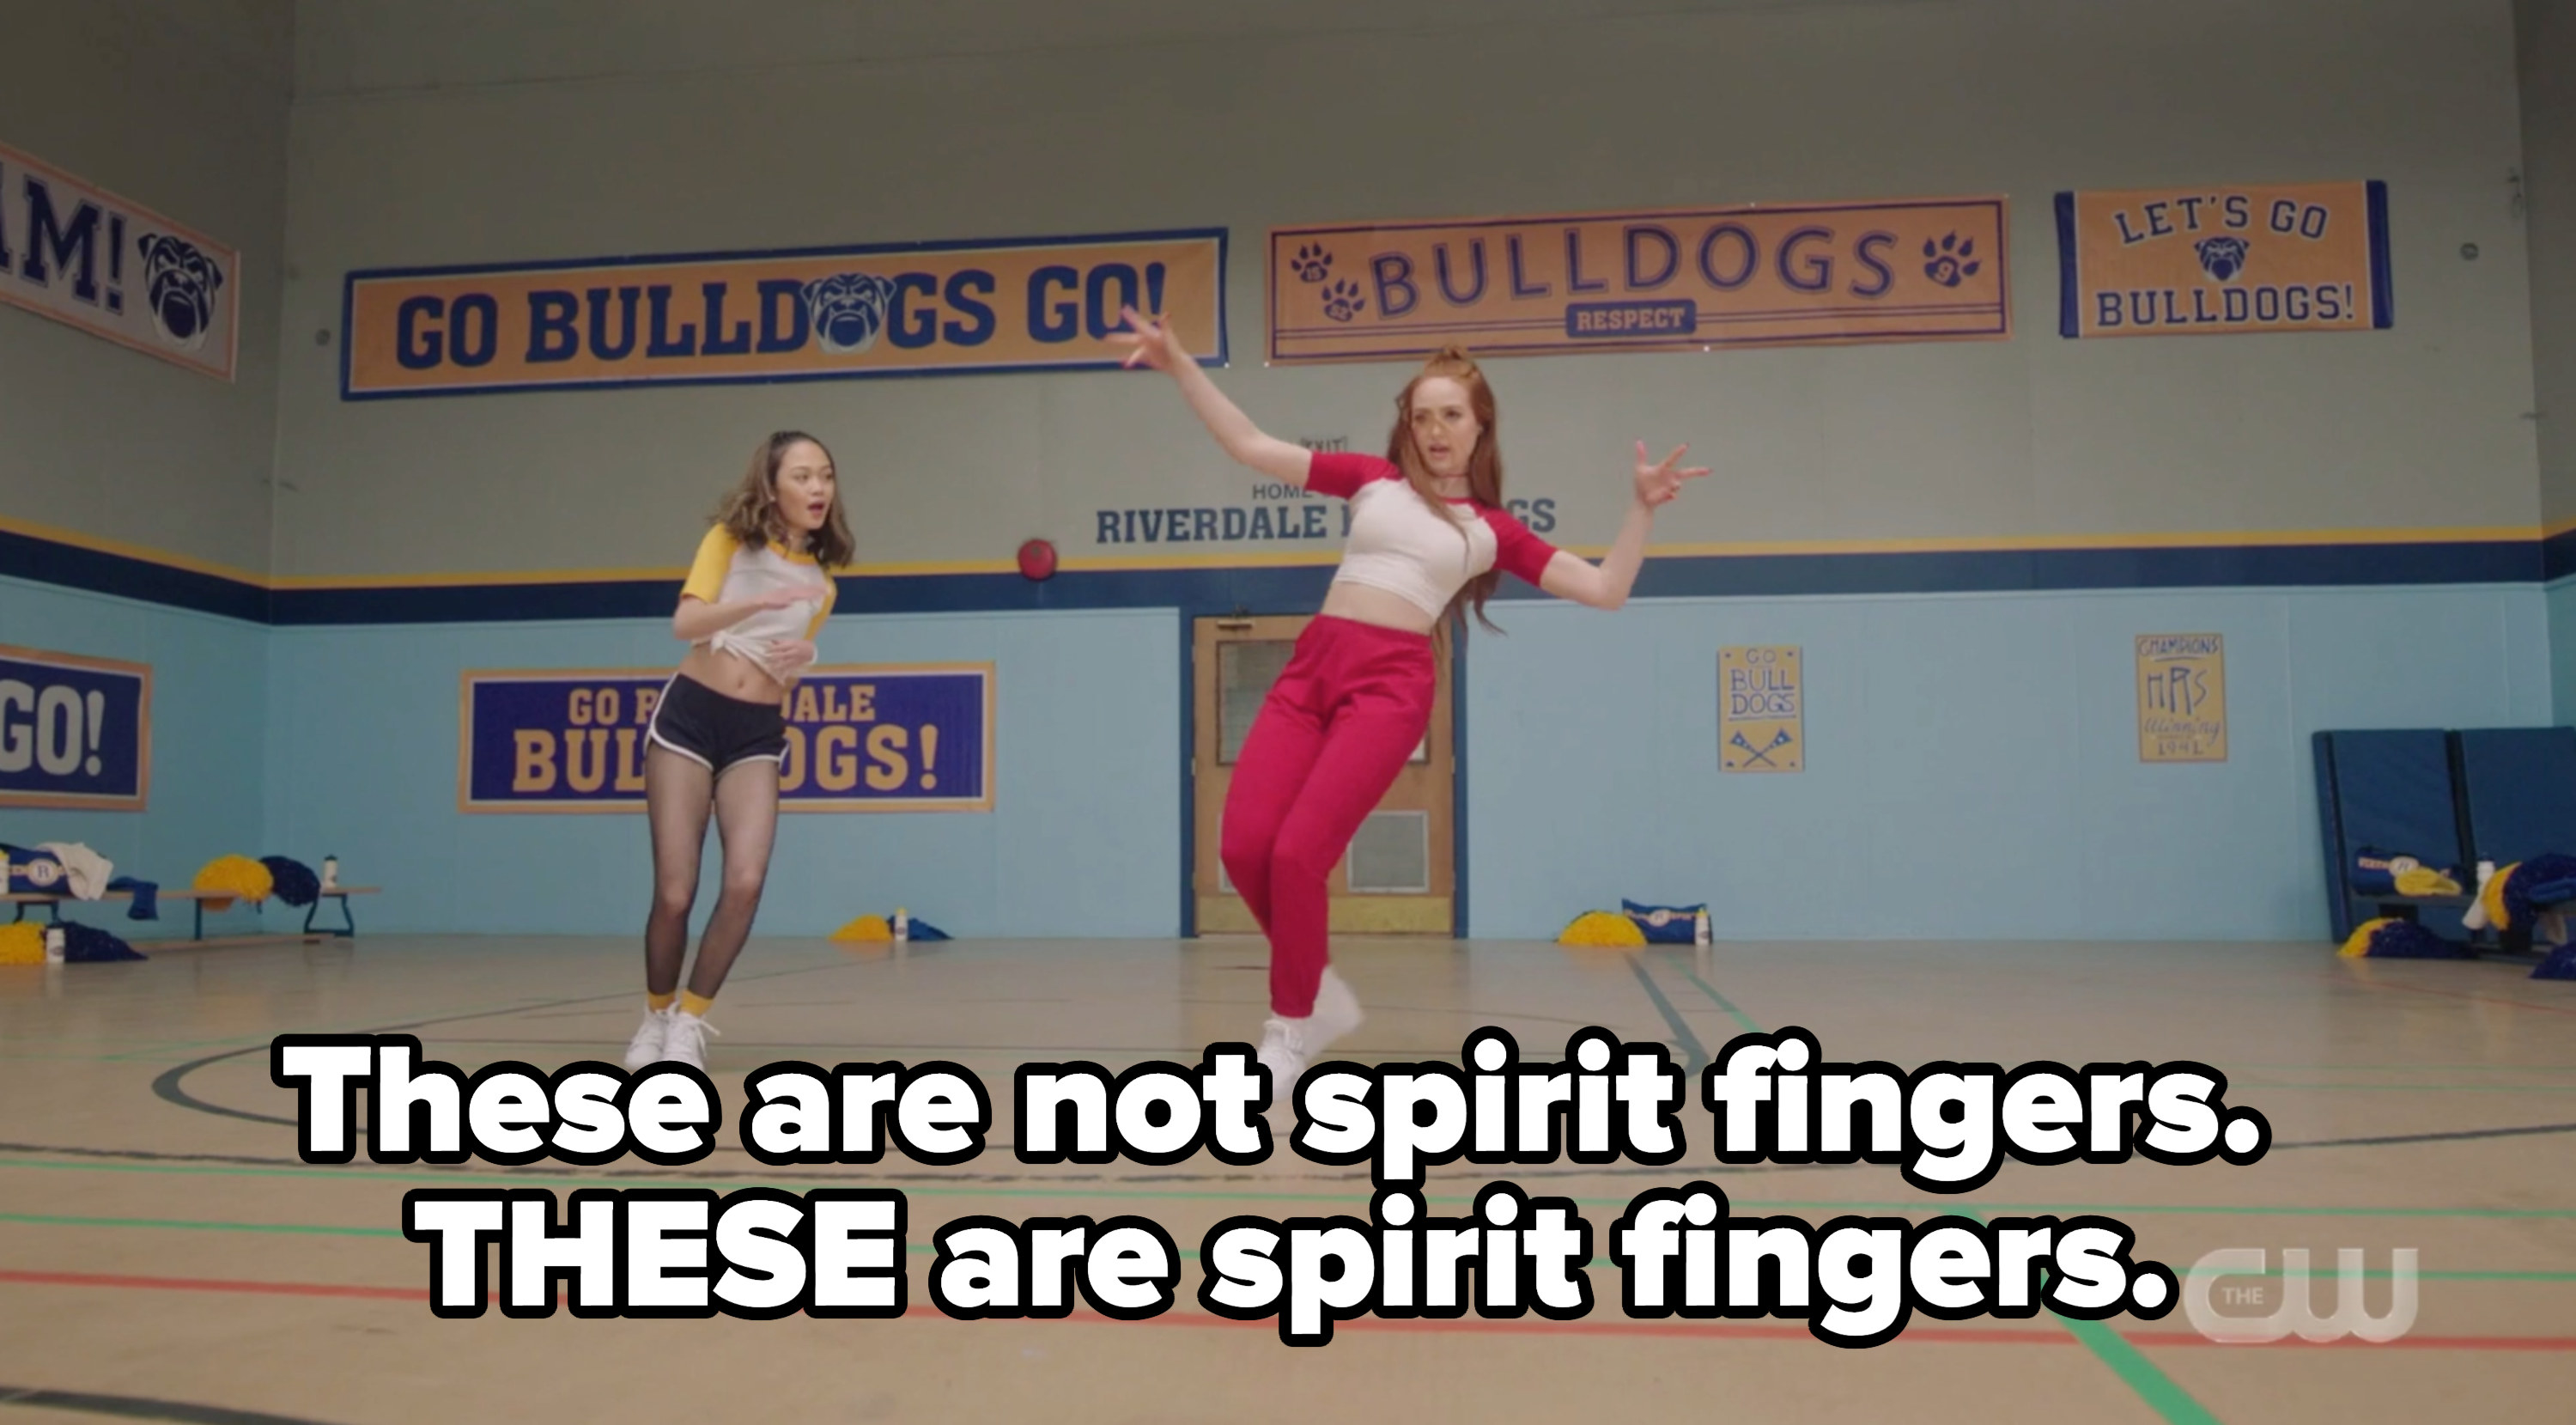 Cheryl dancing with a caption about spirit fingers as a bring it on reference